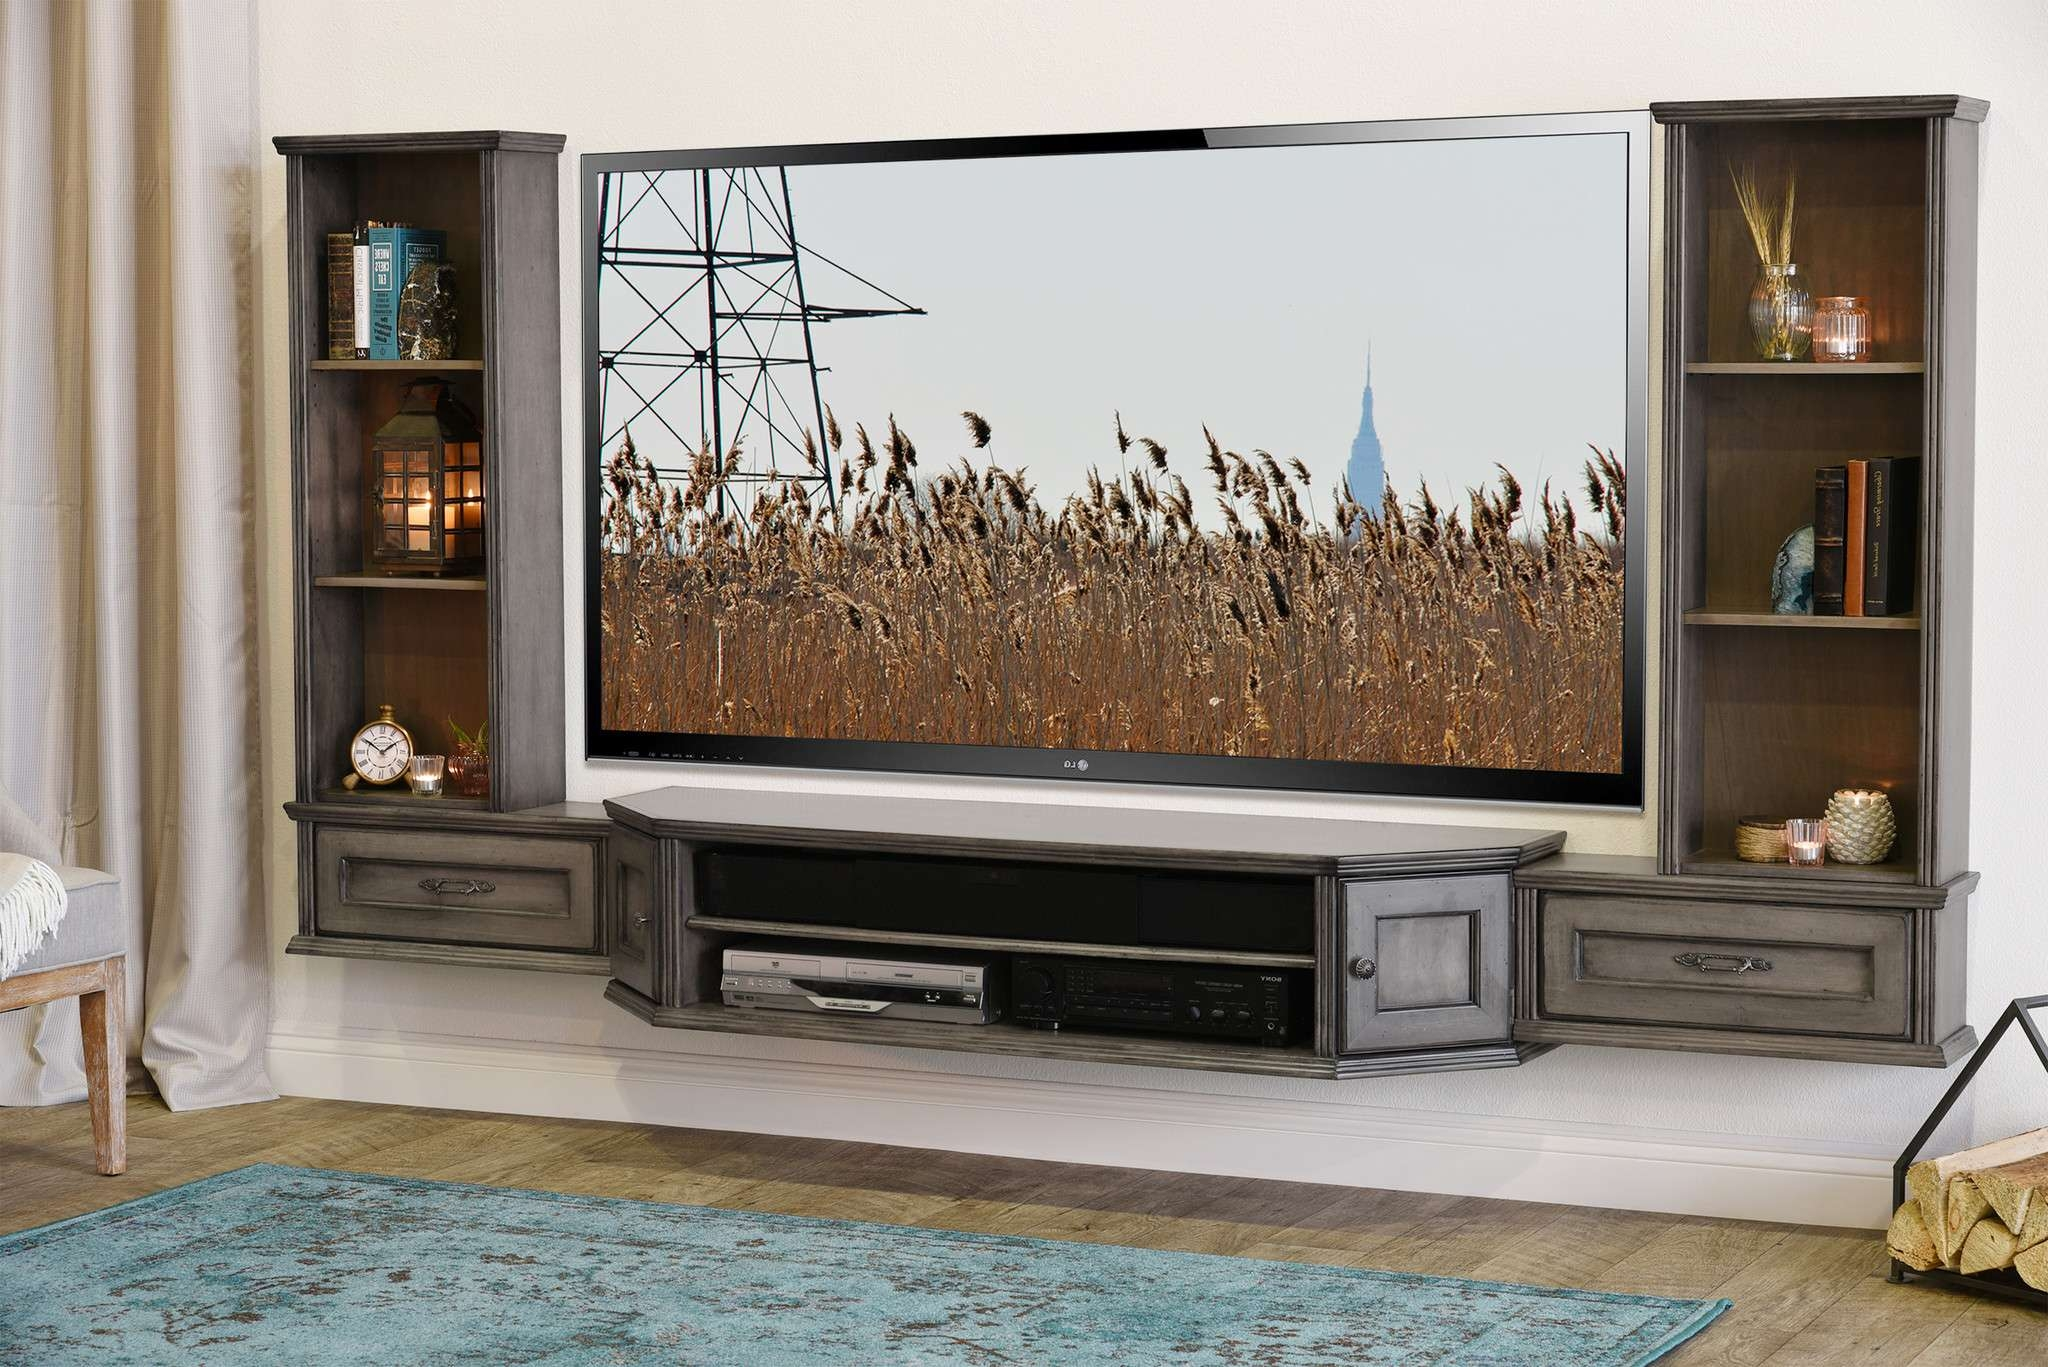 Tv Stands Most Affordable Stand For Inch Ideas Enchanting Guide Throughout Tv Stands For 70 Flat Screen (View 15 of 15)